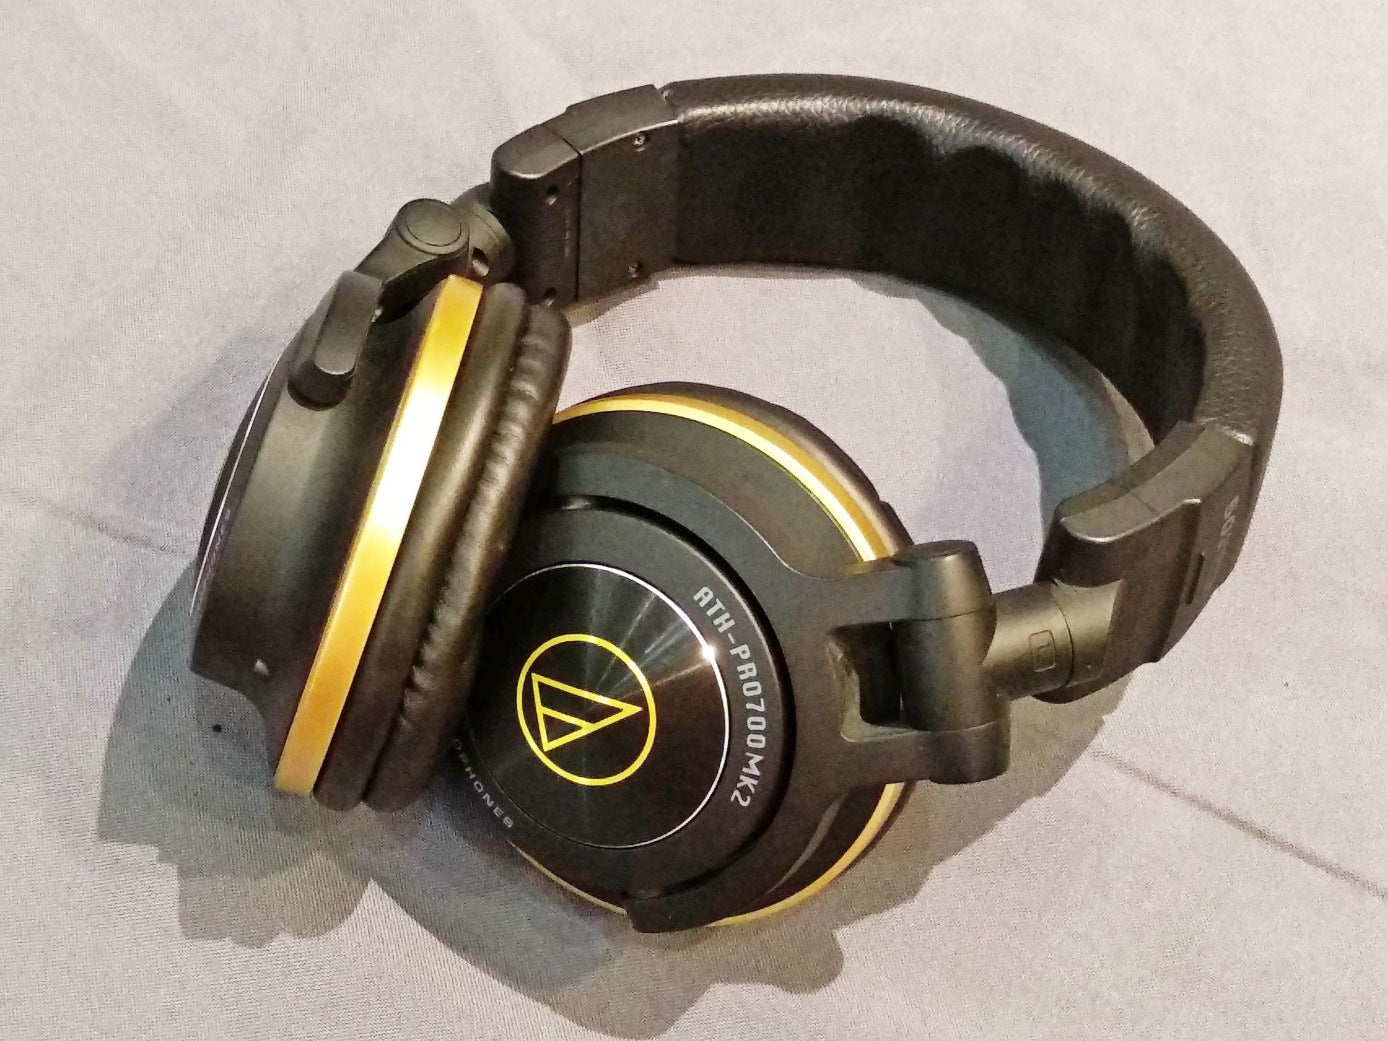 Audio Technica ATH-PRO700MK2ANV Demo (Kuching) - Jaben - The Little Headphone Store